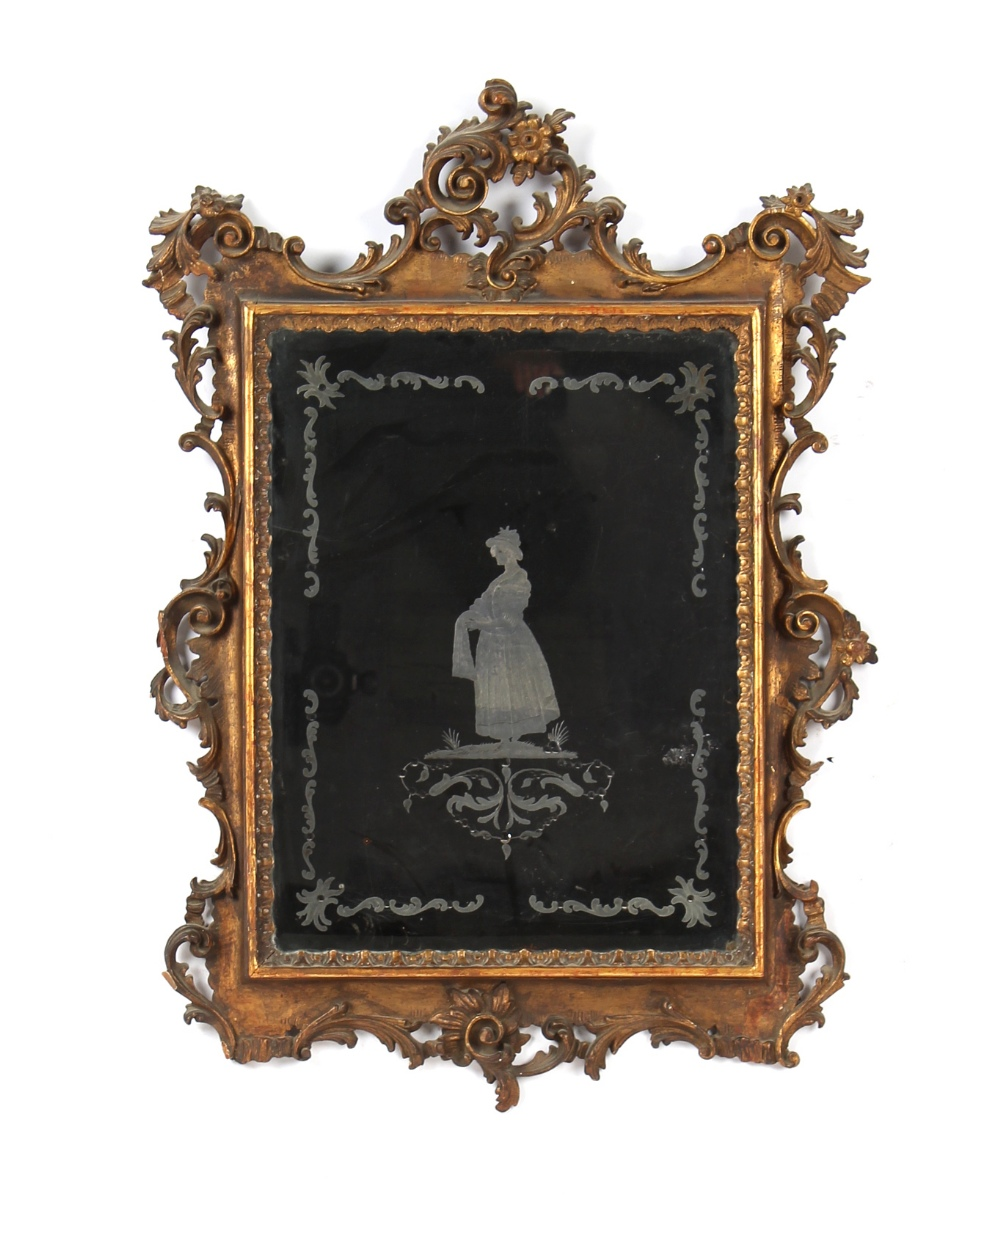 Property of a deceased estate - a 19th century carved giltwood framed wall mirror with engraved